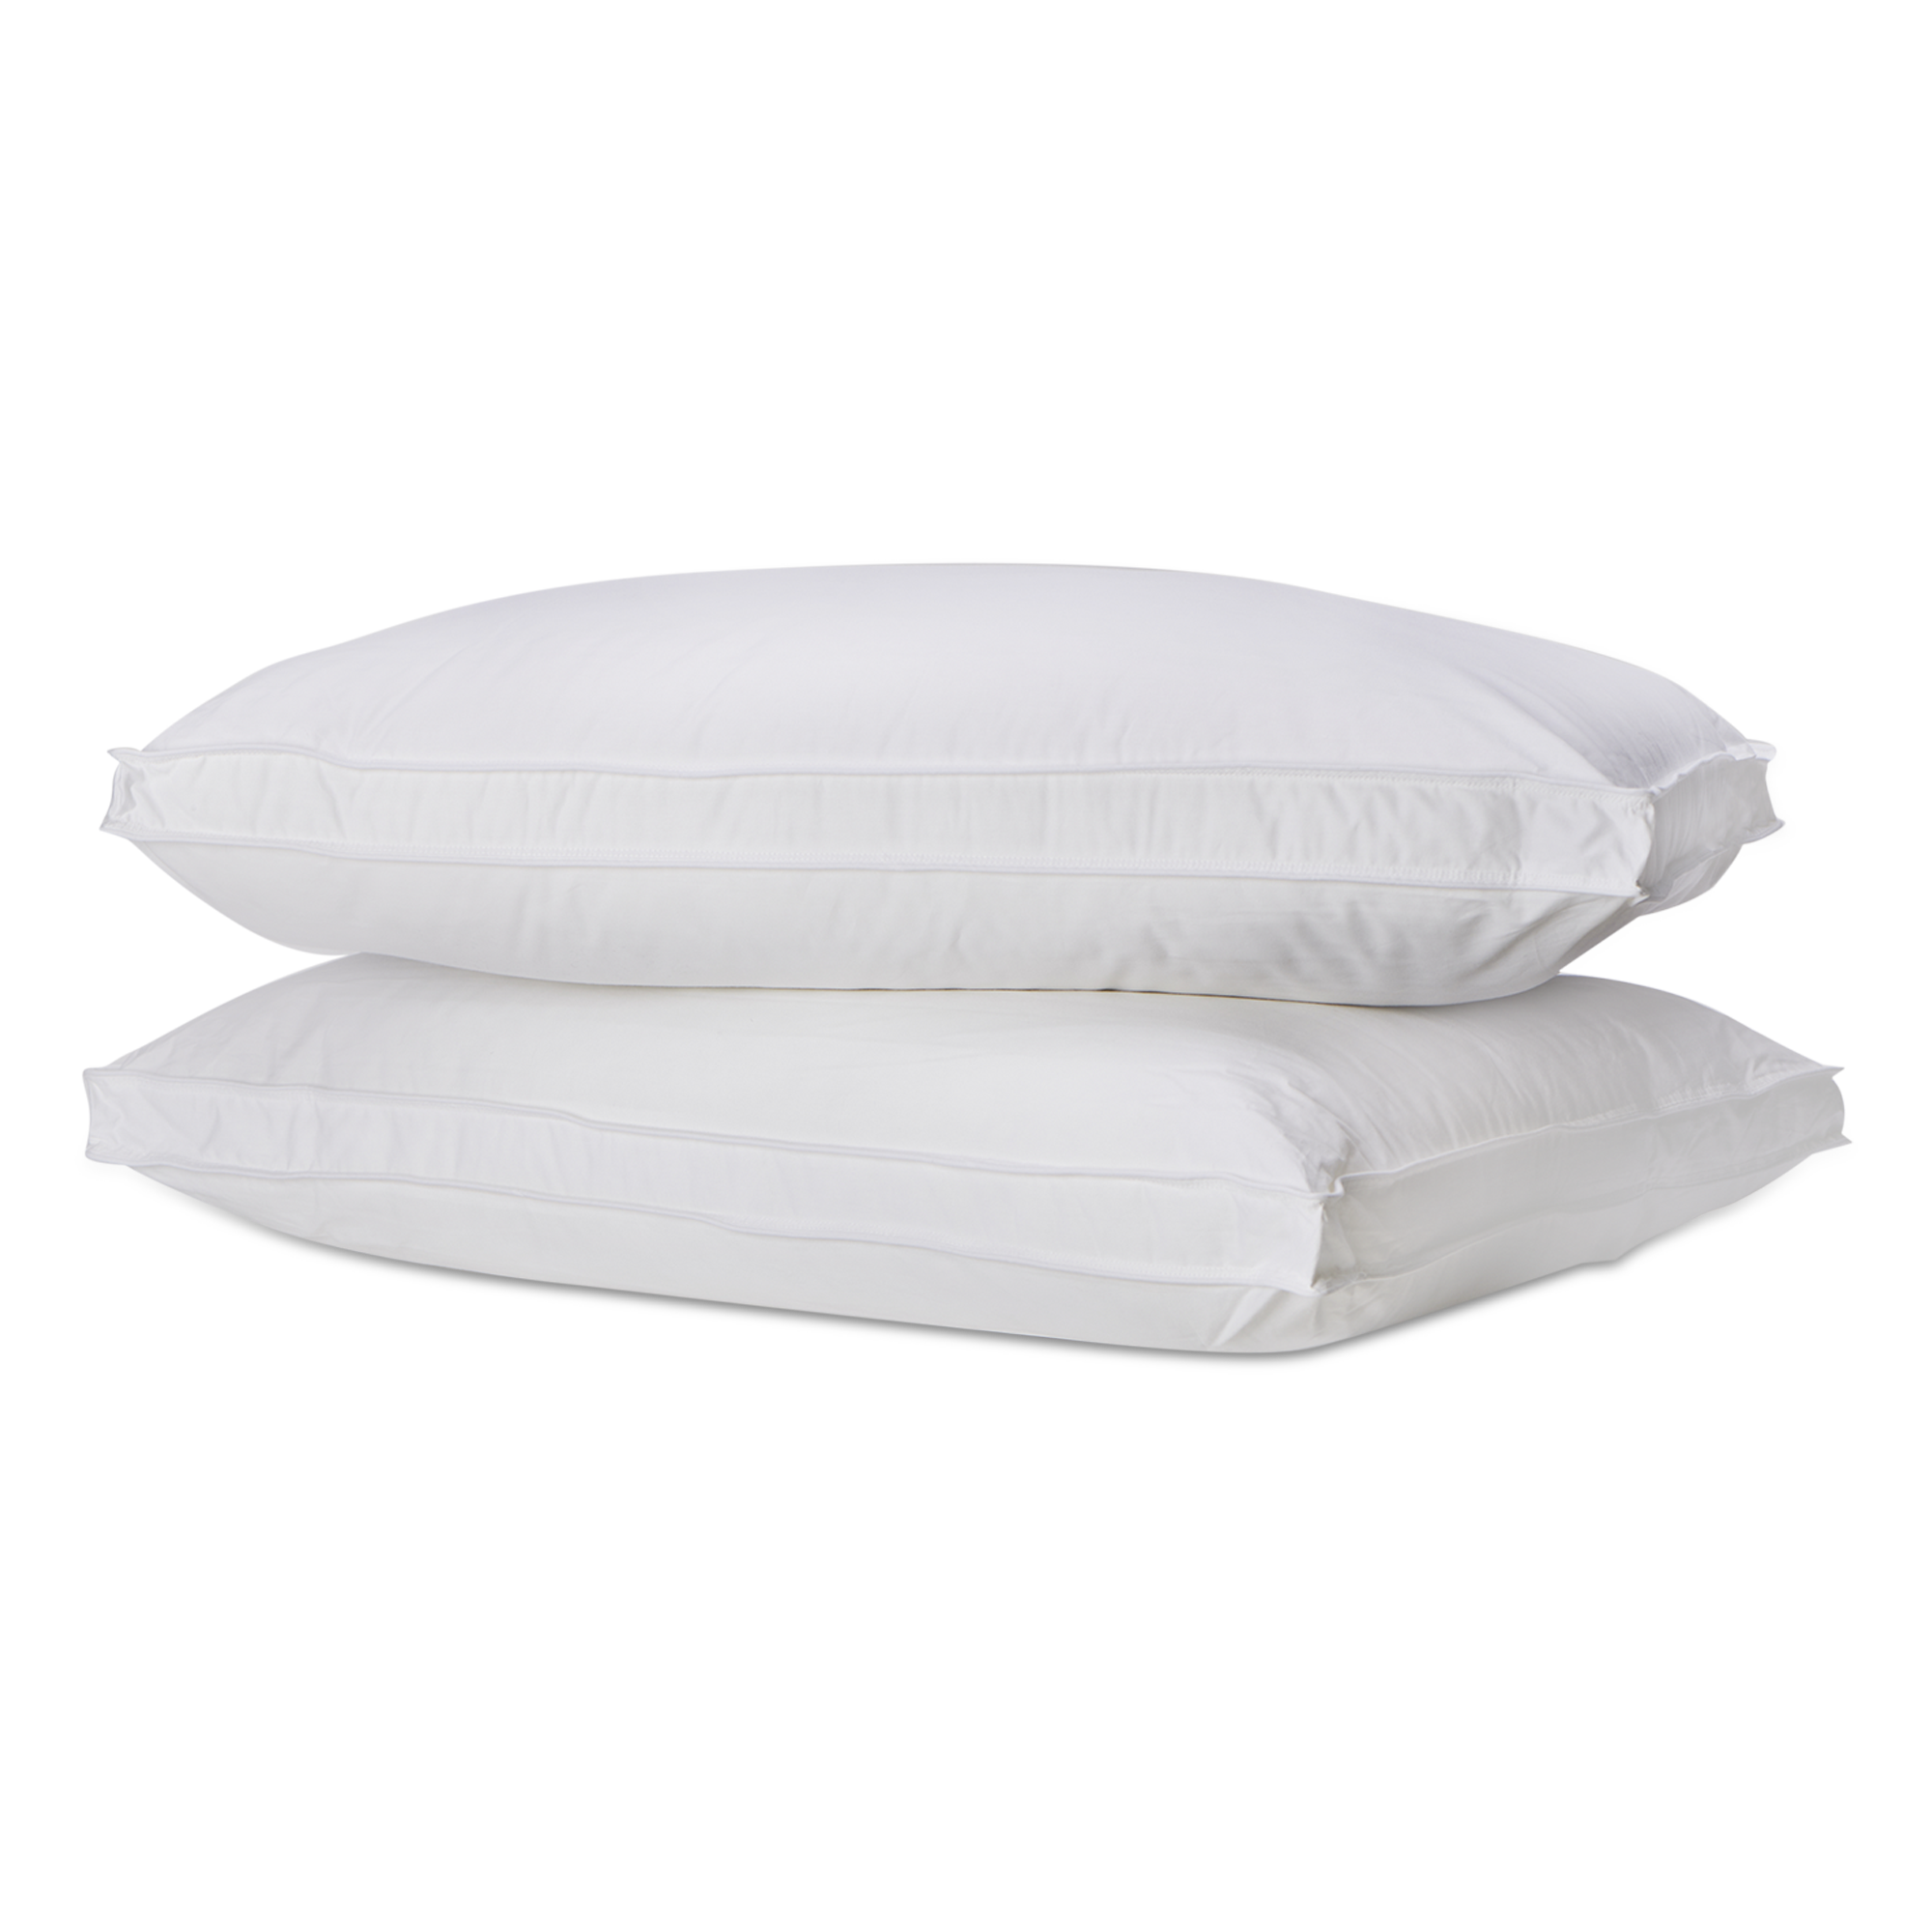 Refined Pillow | Skylark+Owl Linen Co.